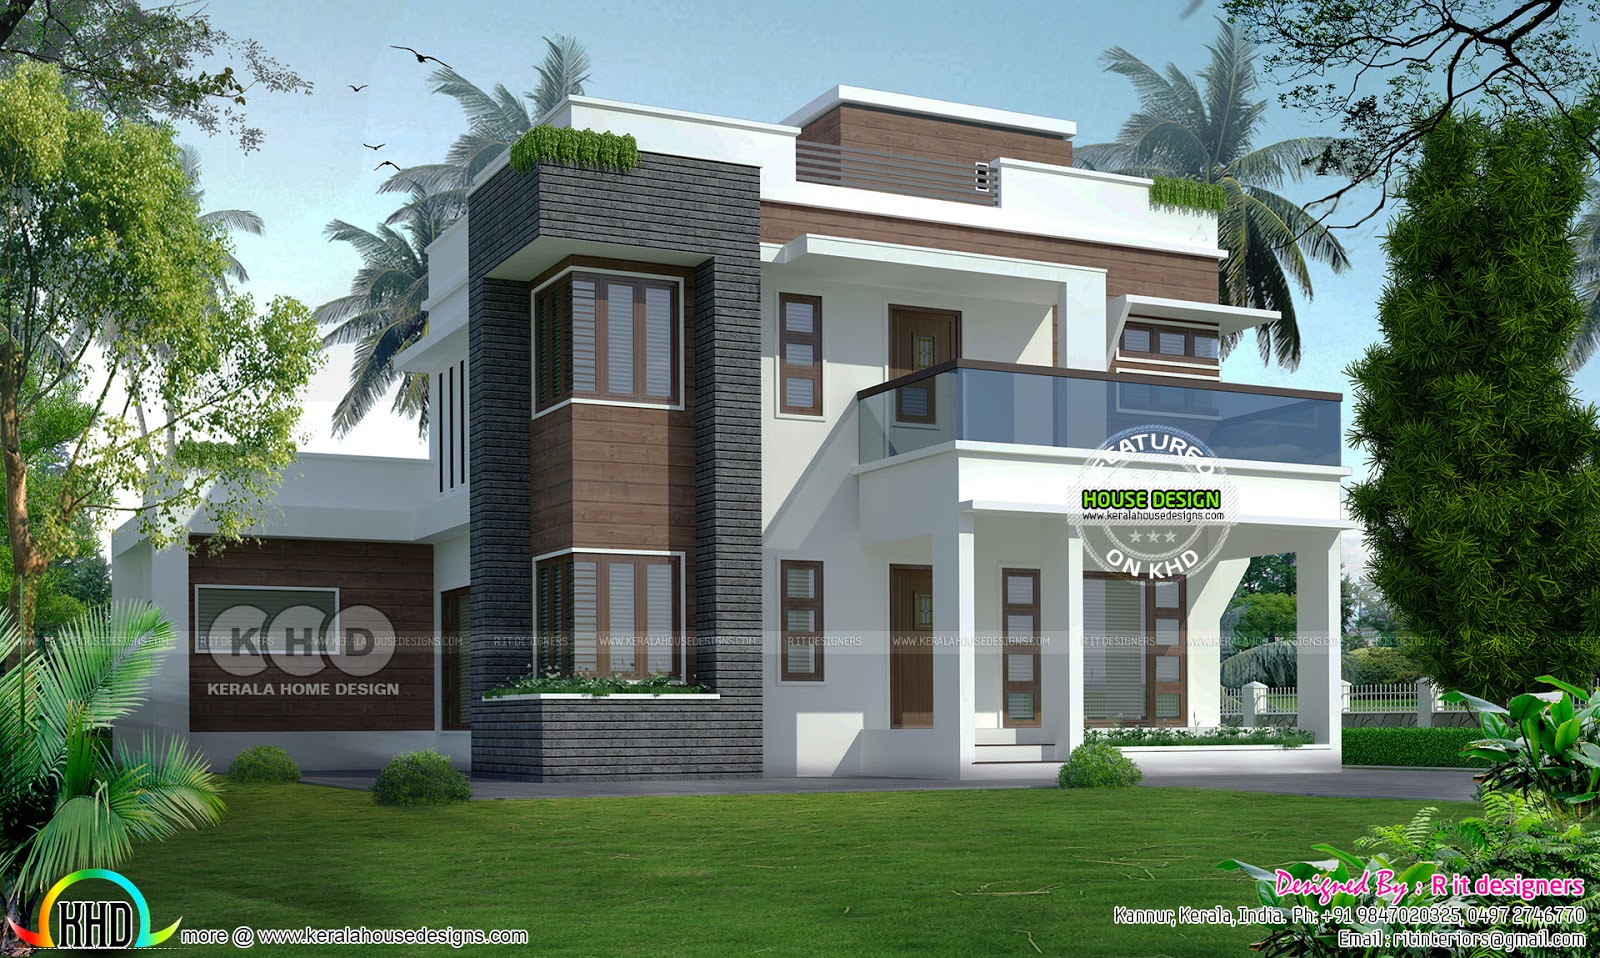 2540 sq ft 4 bedroom house cost of 53 lakhs kerala home for 1600 sq ft house cost